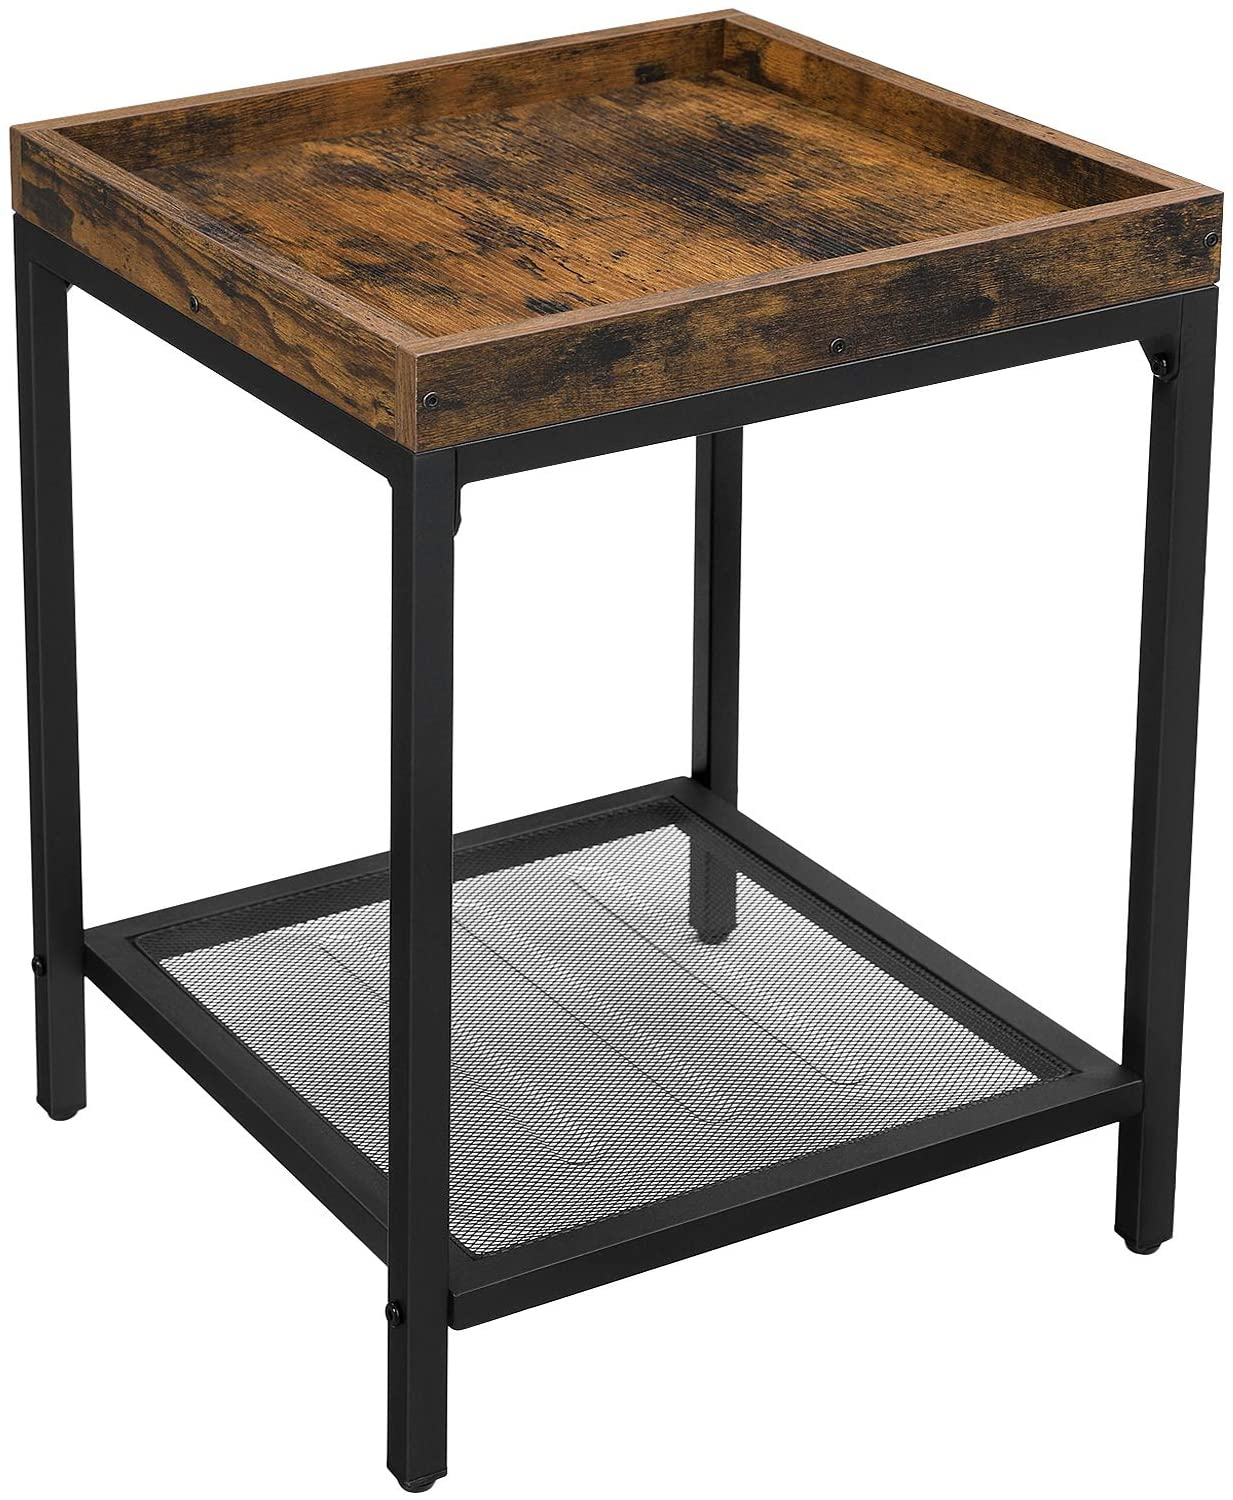 Enjoy fast, free nationwide shipping!  Owned by a husband and wife team of high-school music teachers, HawkinsWoodshop.com is your one stop shop for affordable furniture.  Shop HawkinsWoodshop.com for solid wood & metal modern, traditional, contemporary, industrial, custom, rustic, and farmhouse furniture including our Ryan Mesh Shelf Raised Edges Side Table.